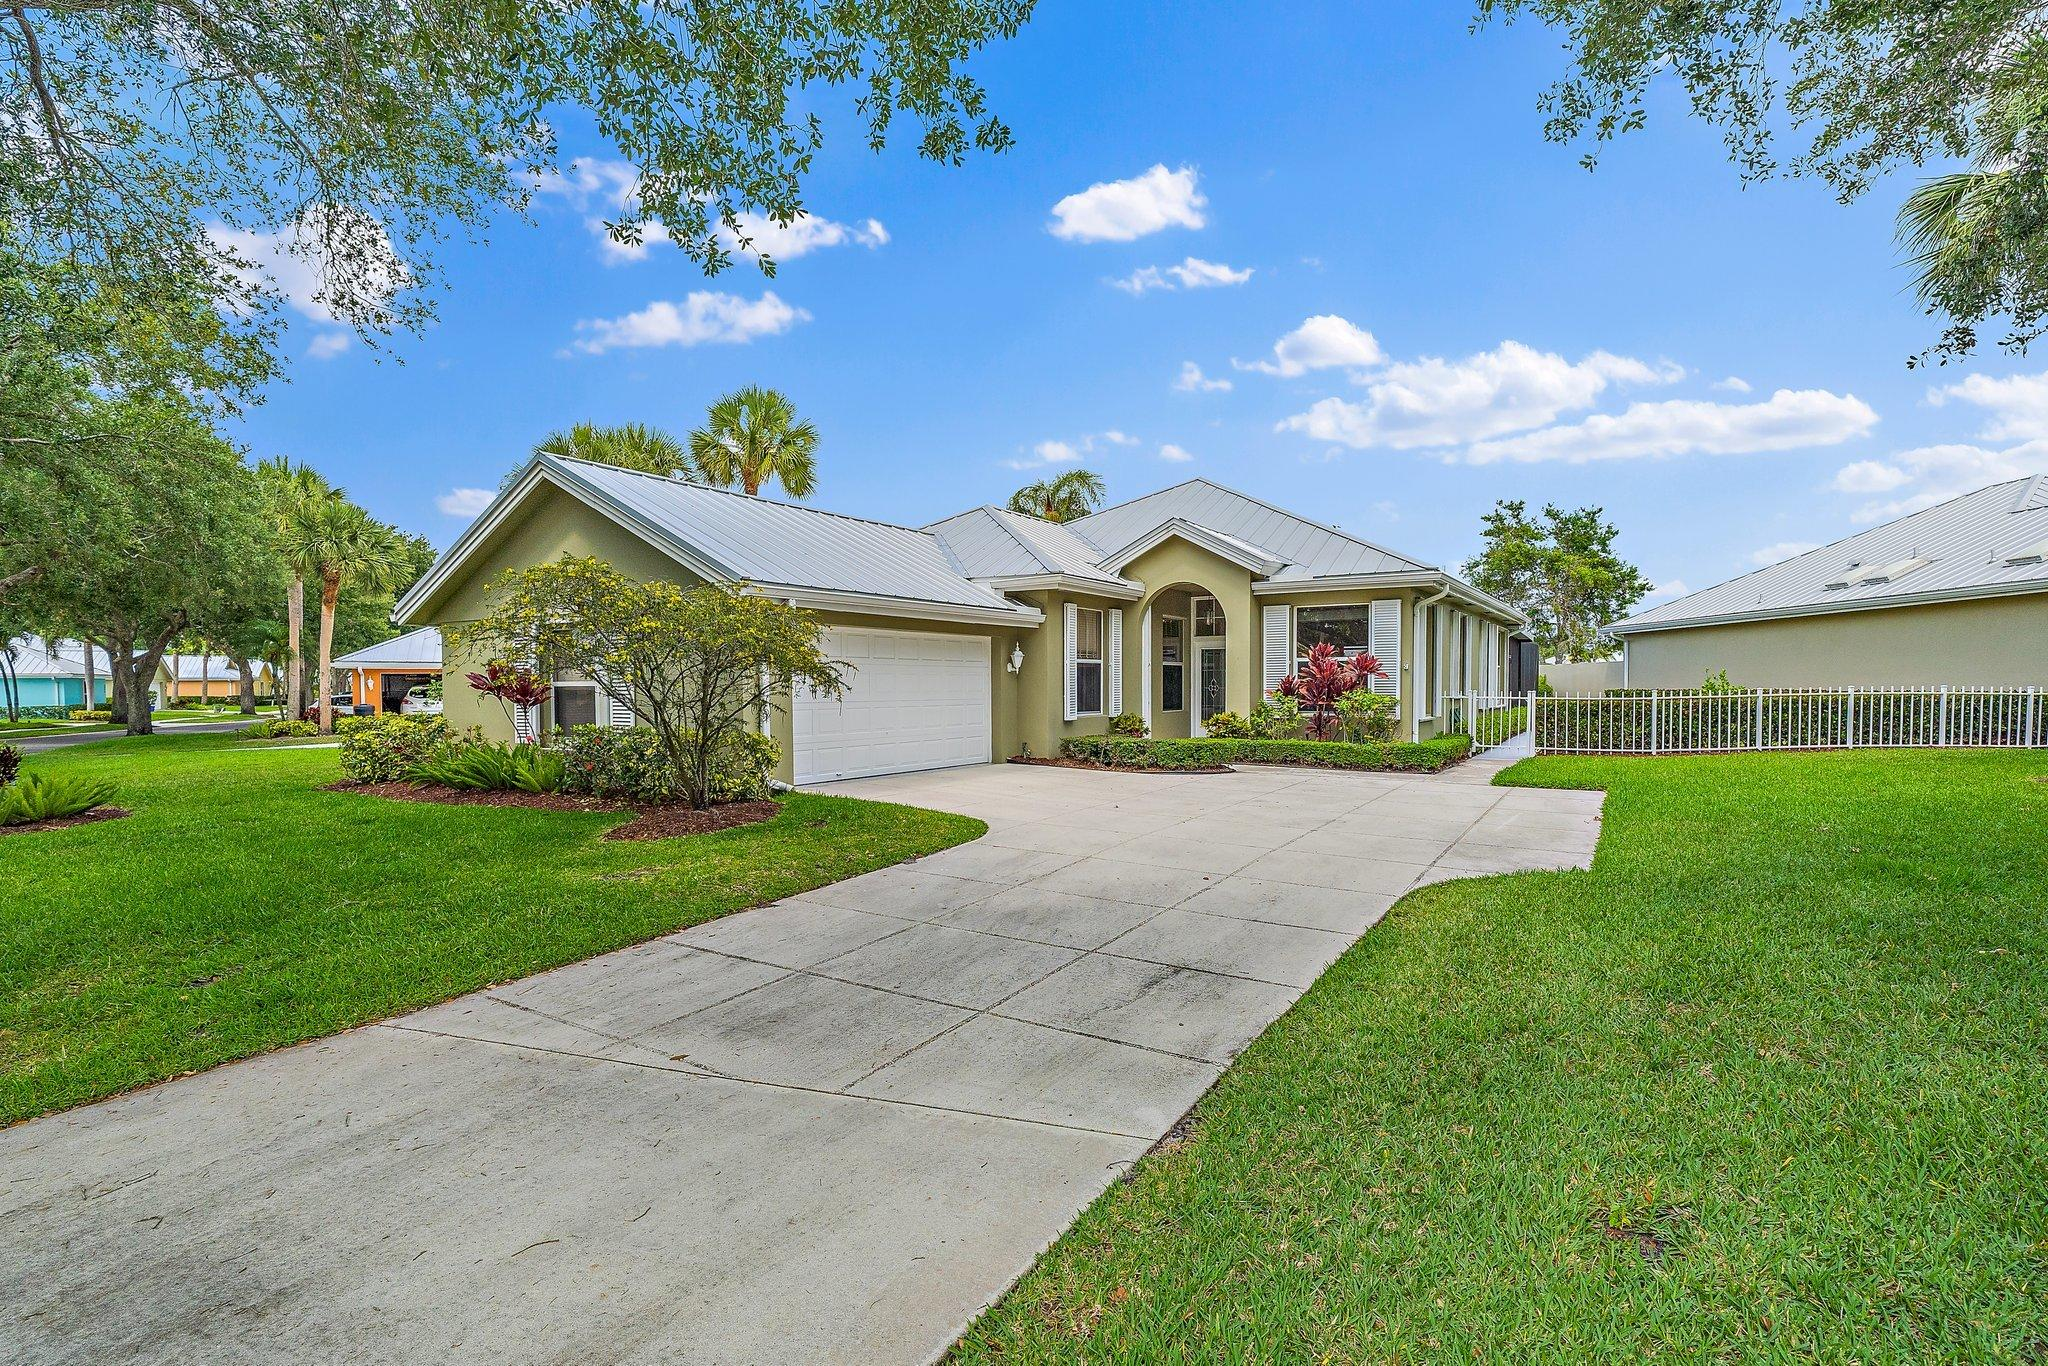 Home for sale in Meadows Palm City Florida